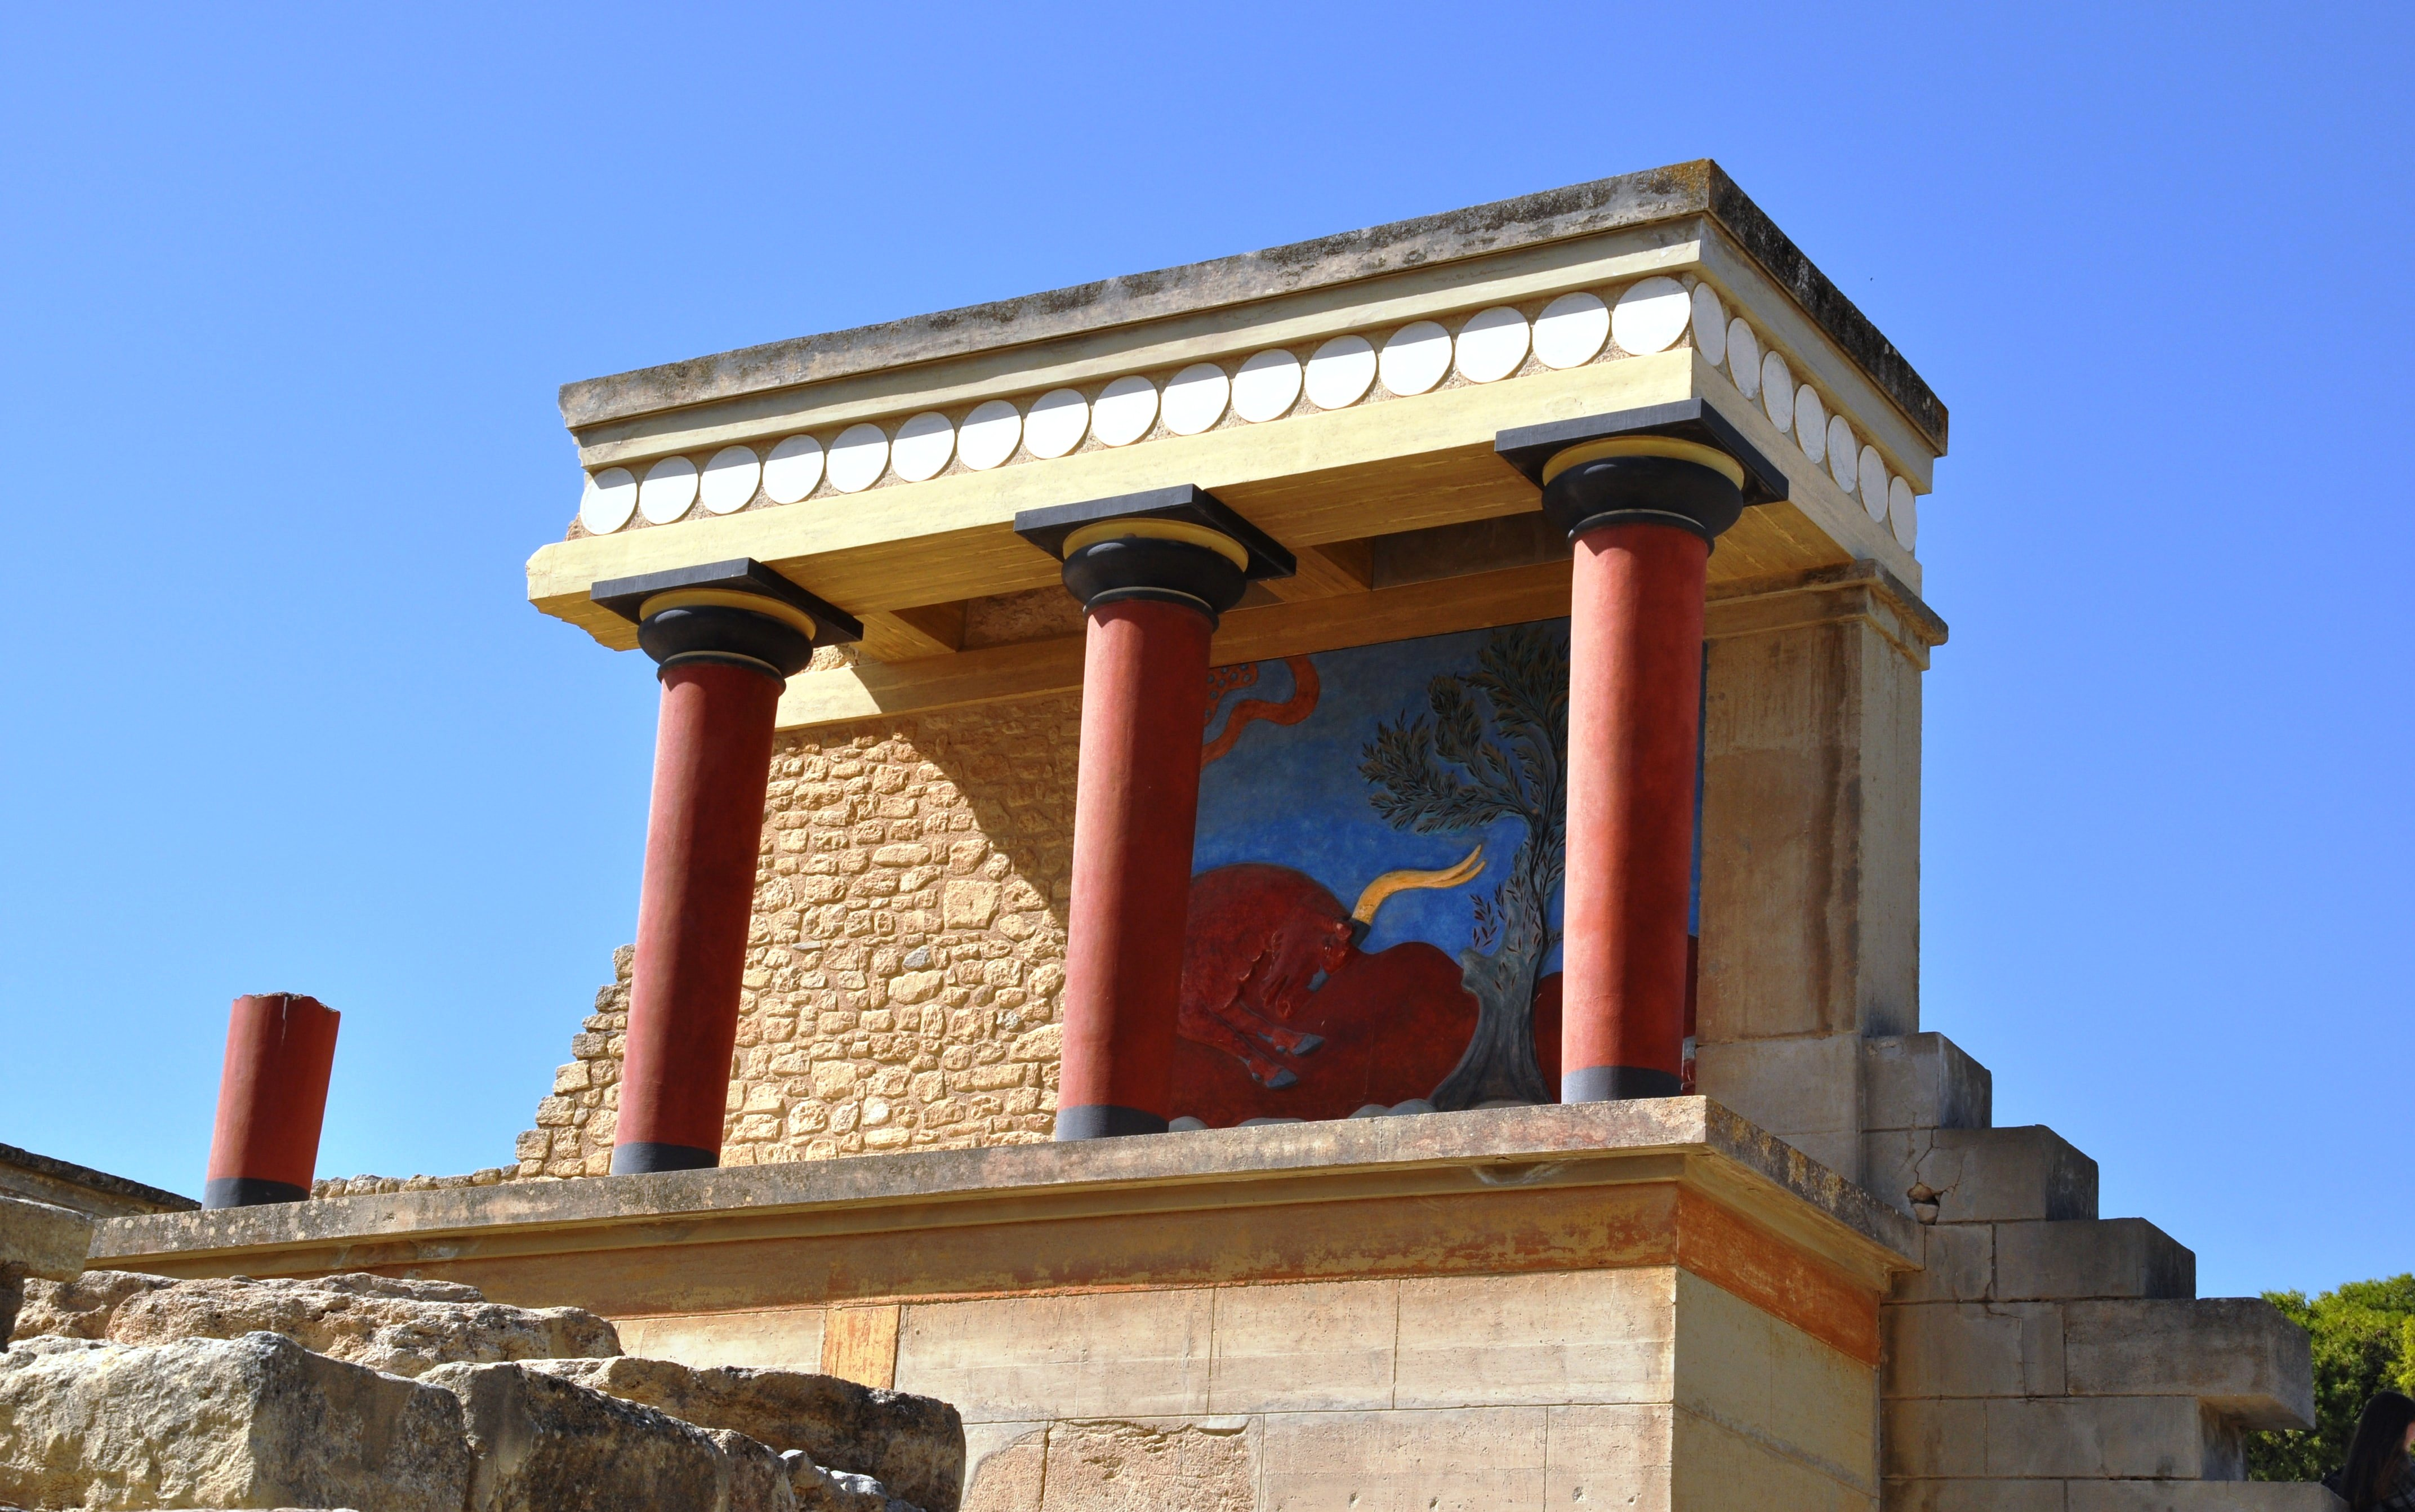 Knossos family guided tour kids love greece Crete Percy Jackson Mythology Family Trip 7-day Package activities for families